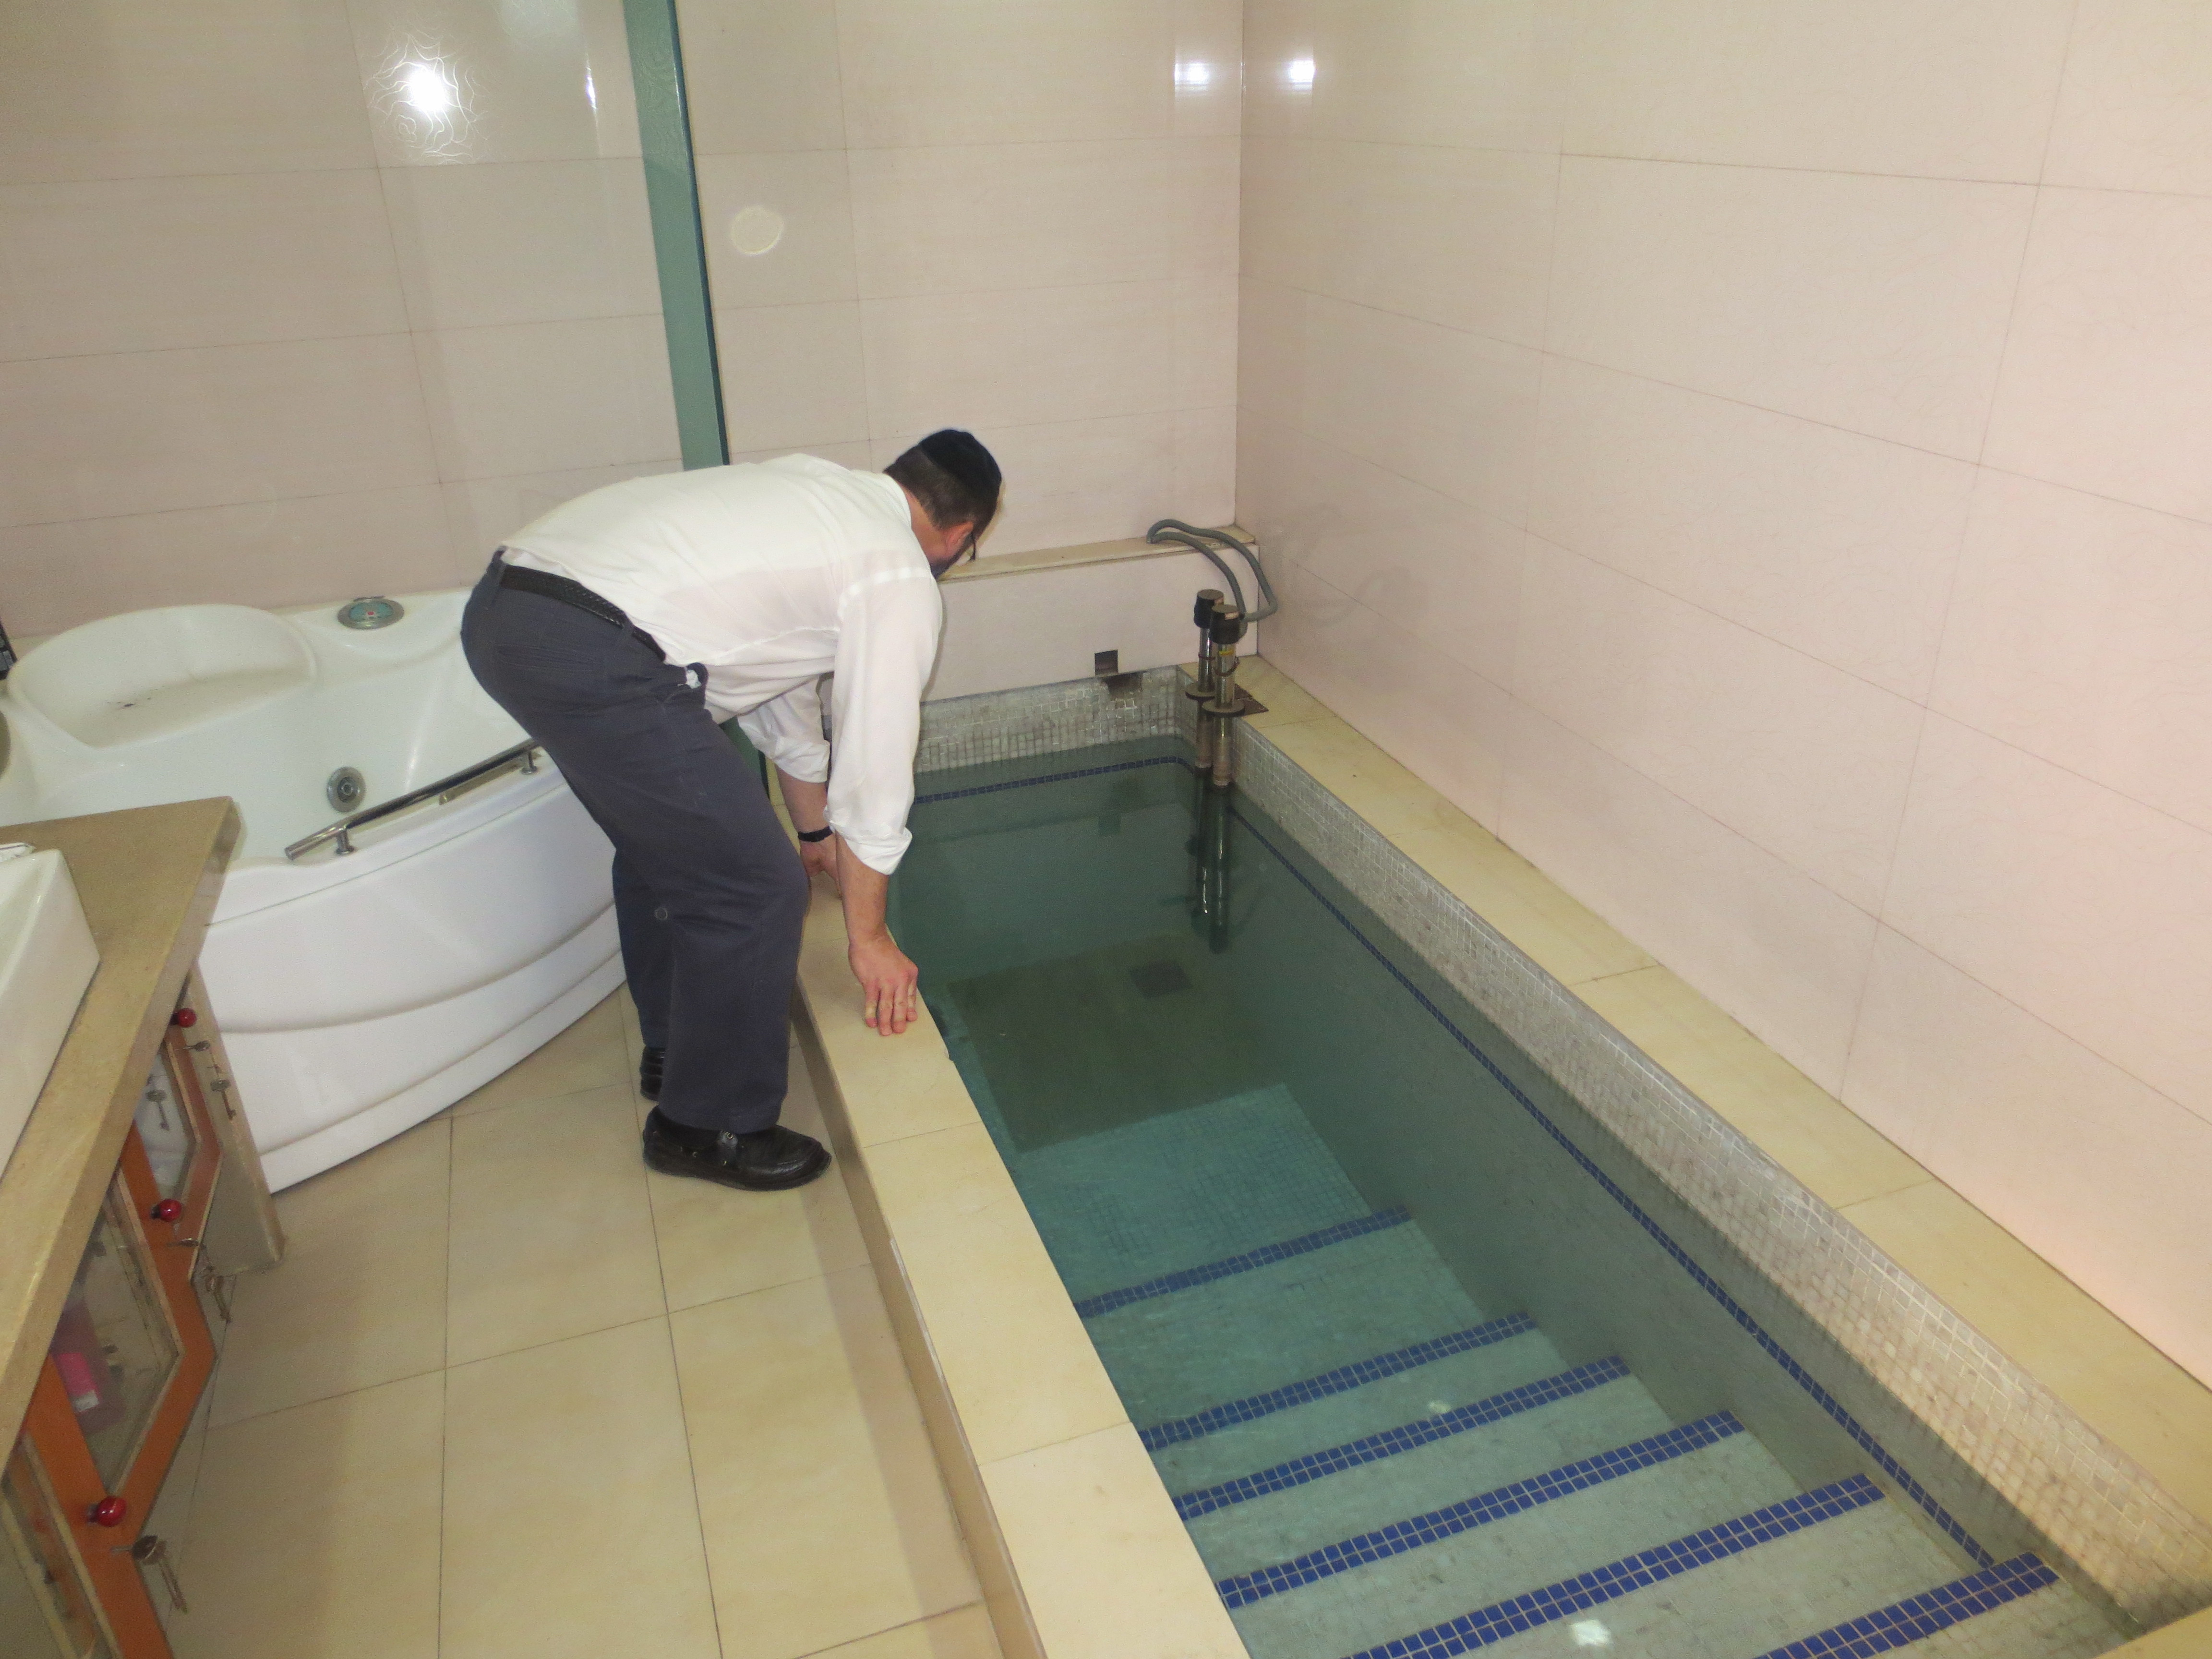 checking the mikveh